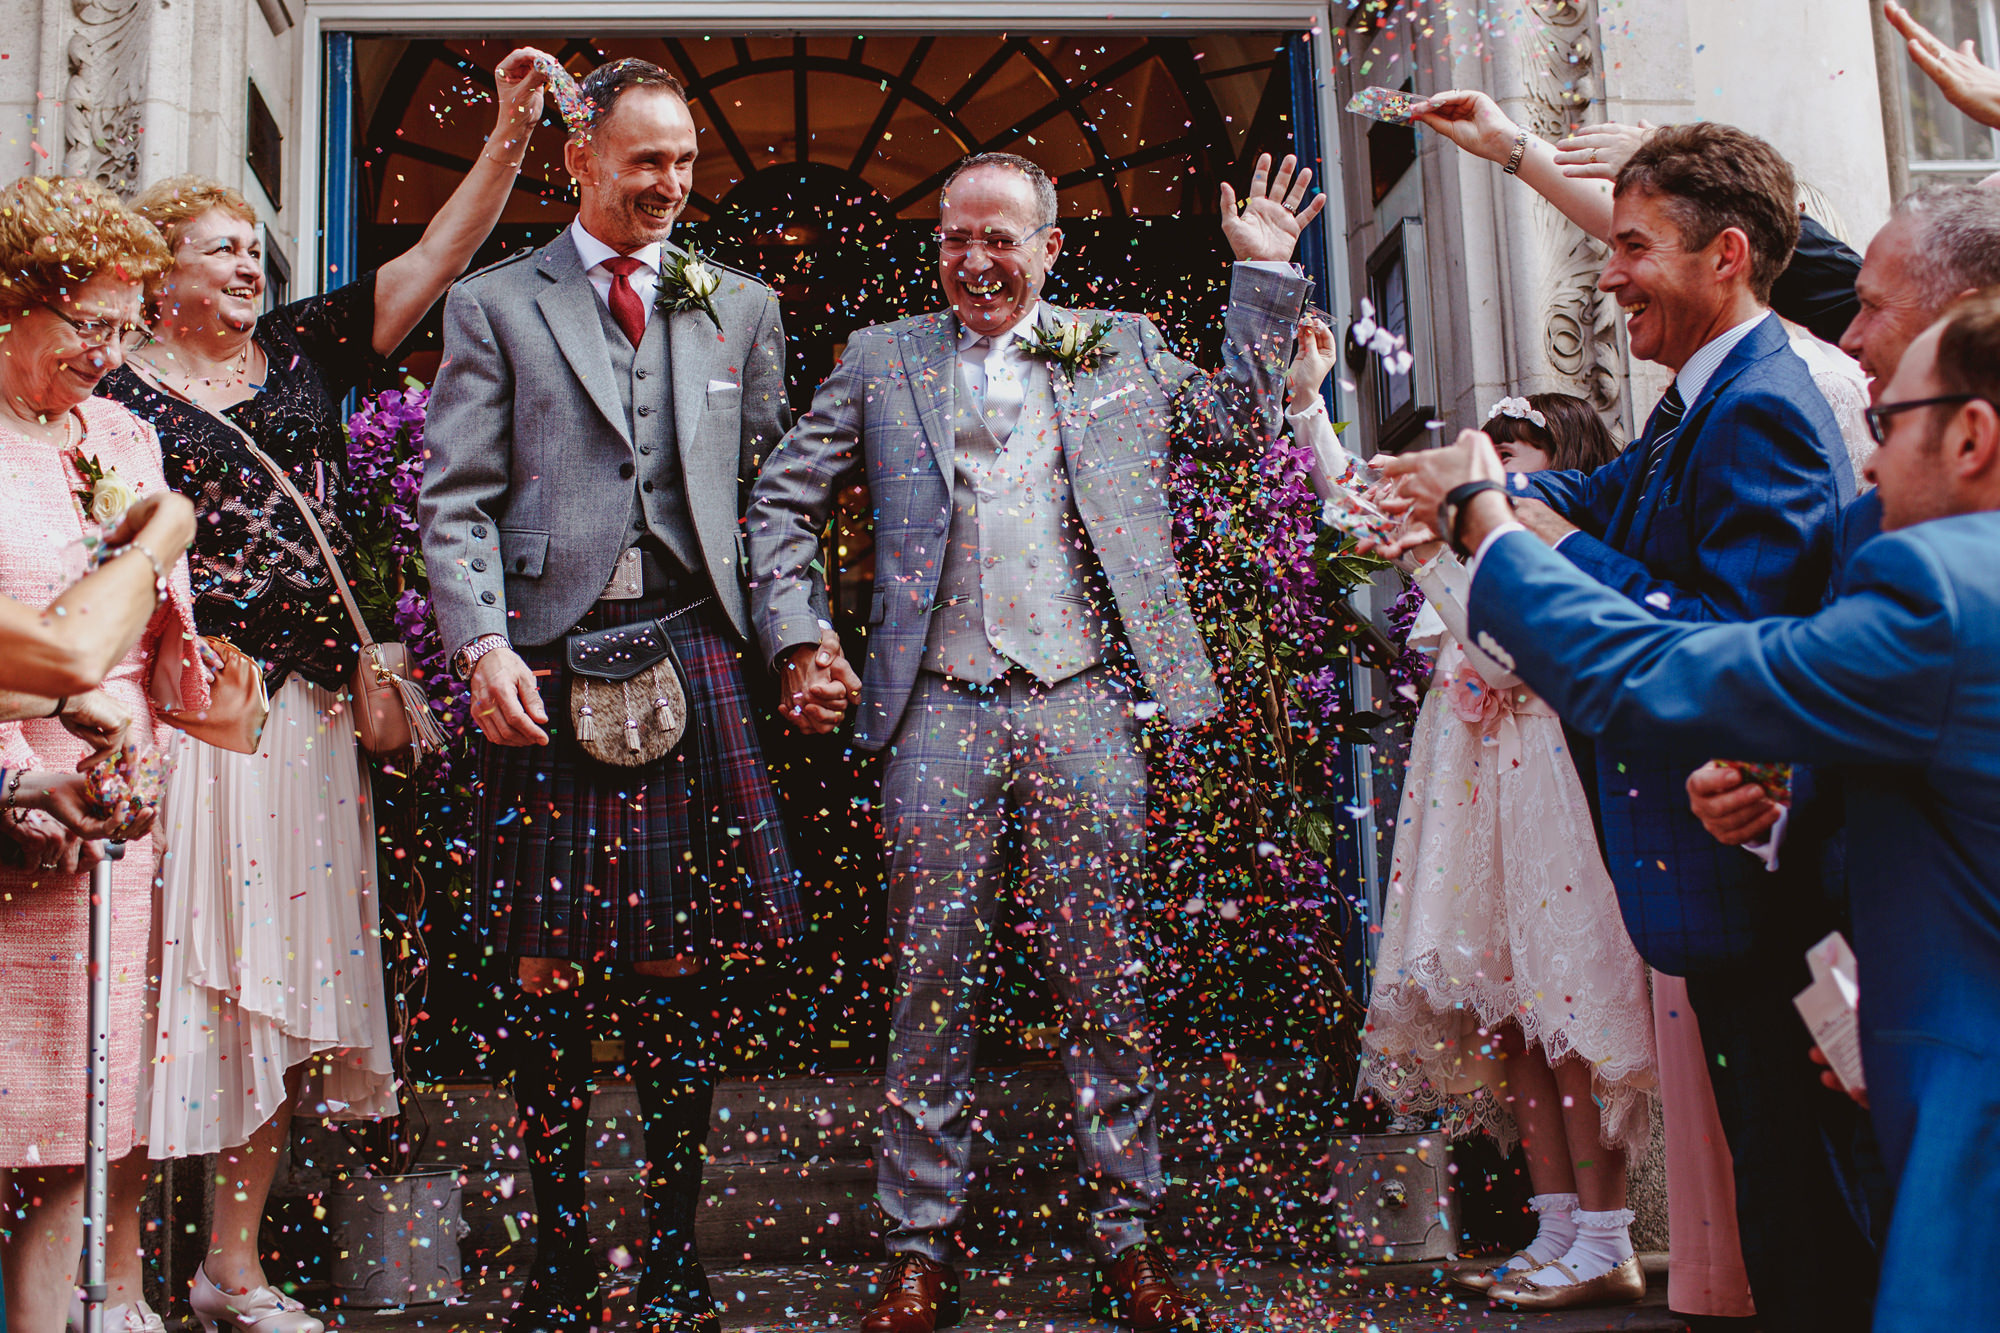 Two grooms exiting to confetti - photo by Tomas Juskaitis Photography